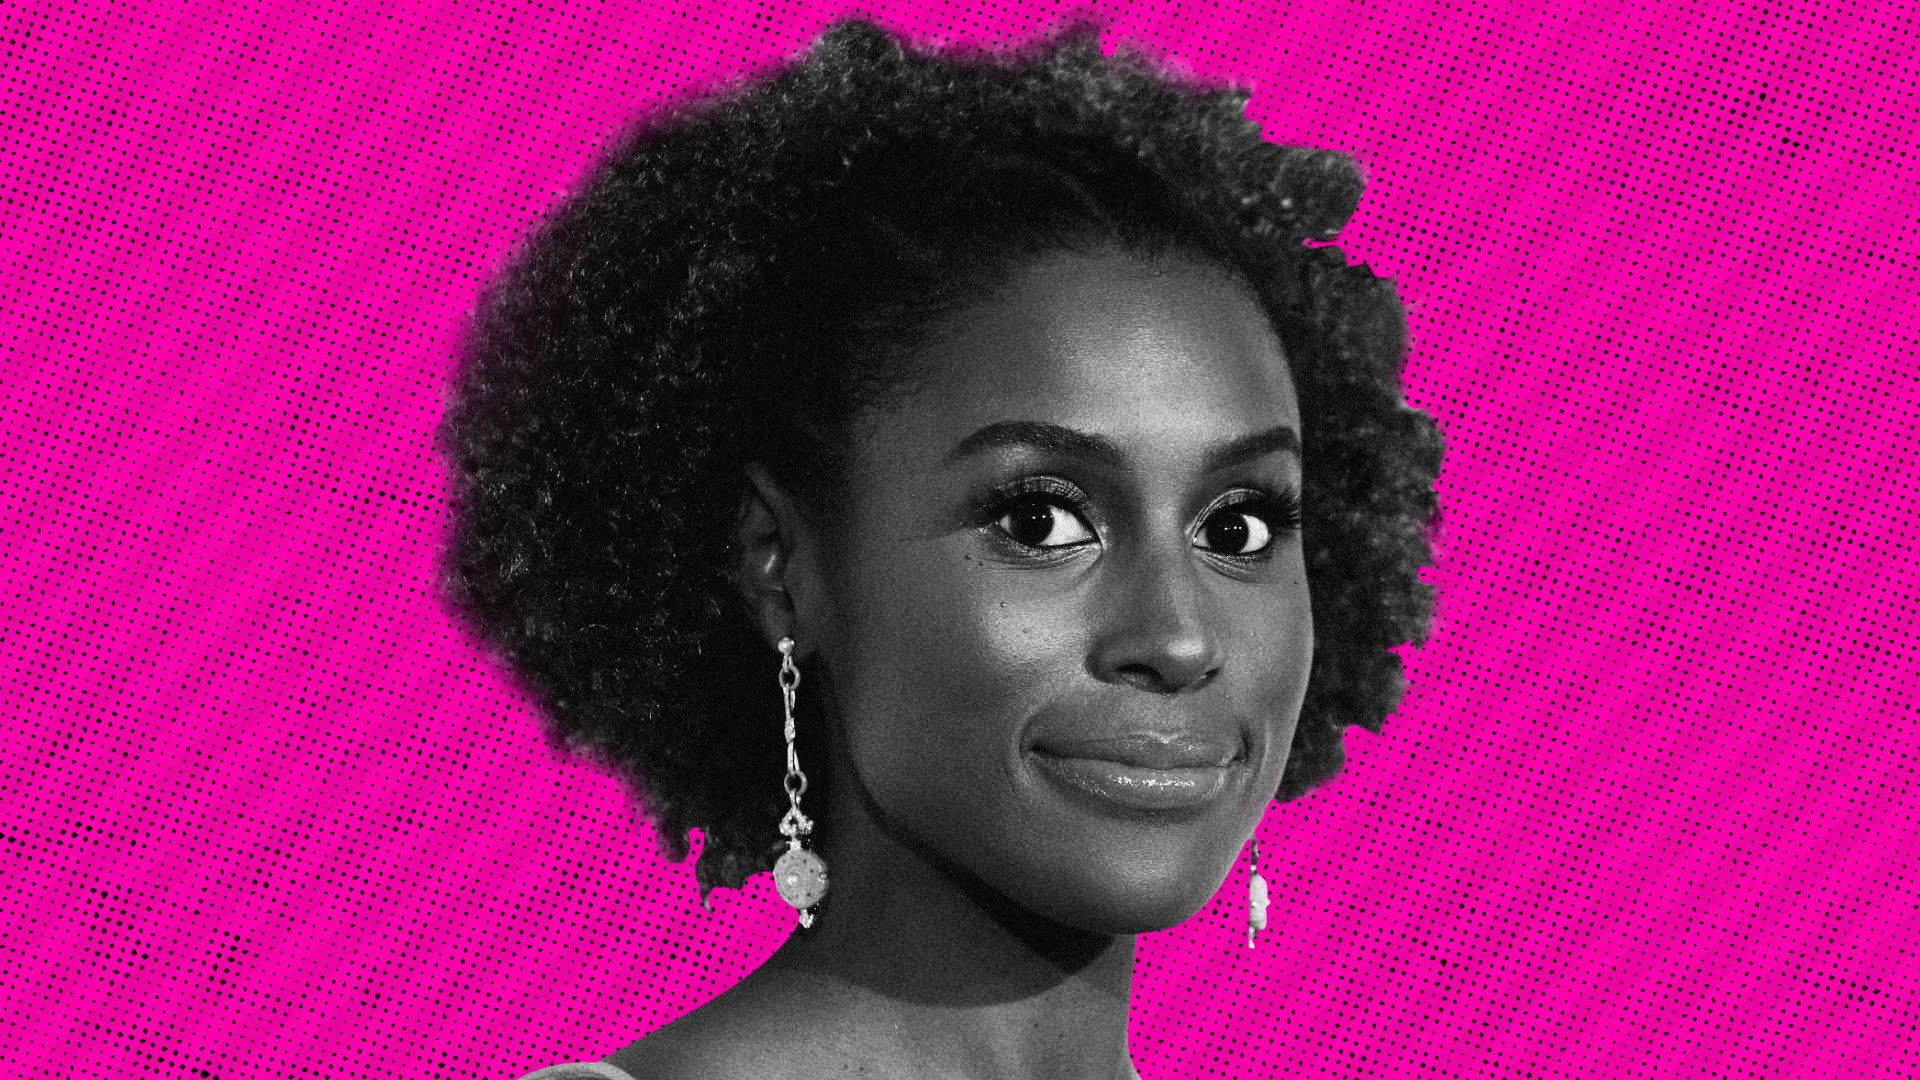 Issa Rae is carving an important space for black content creators